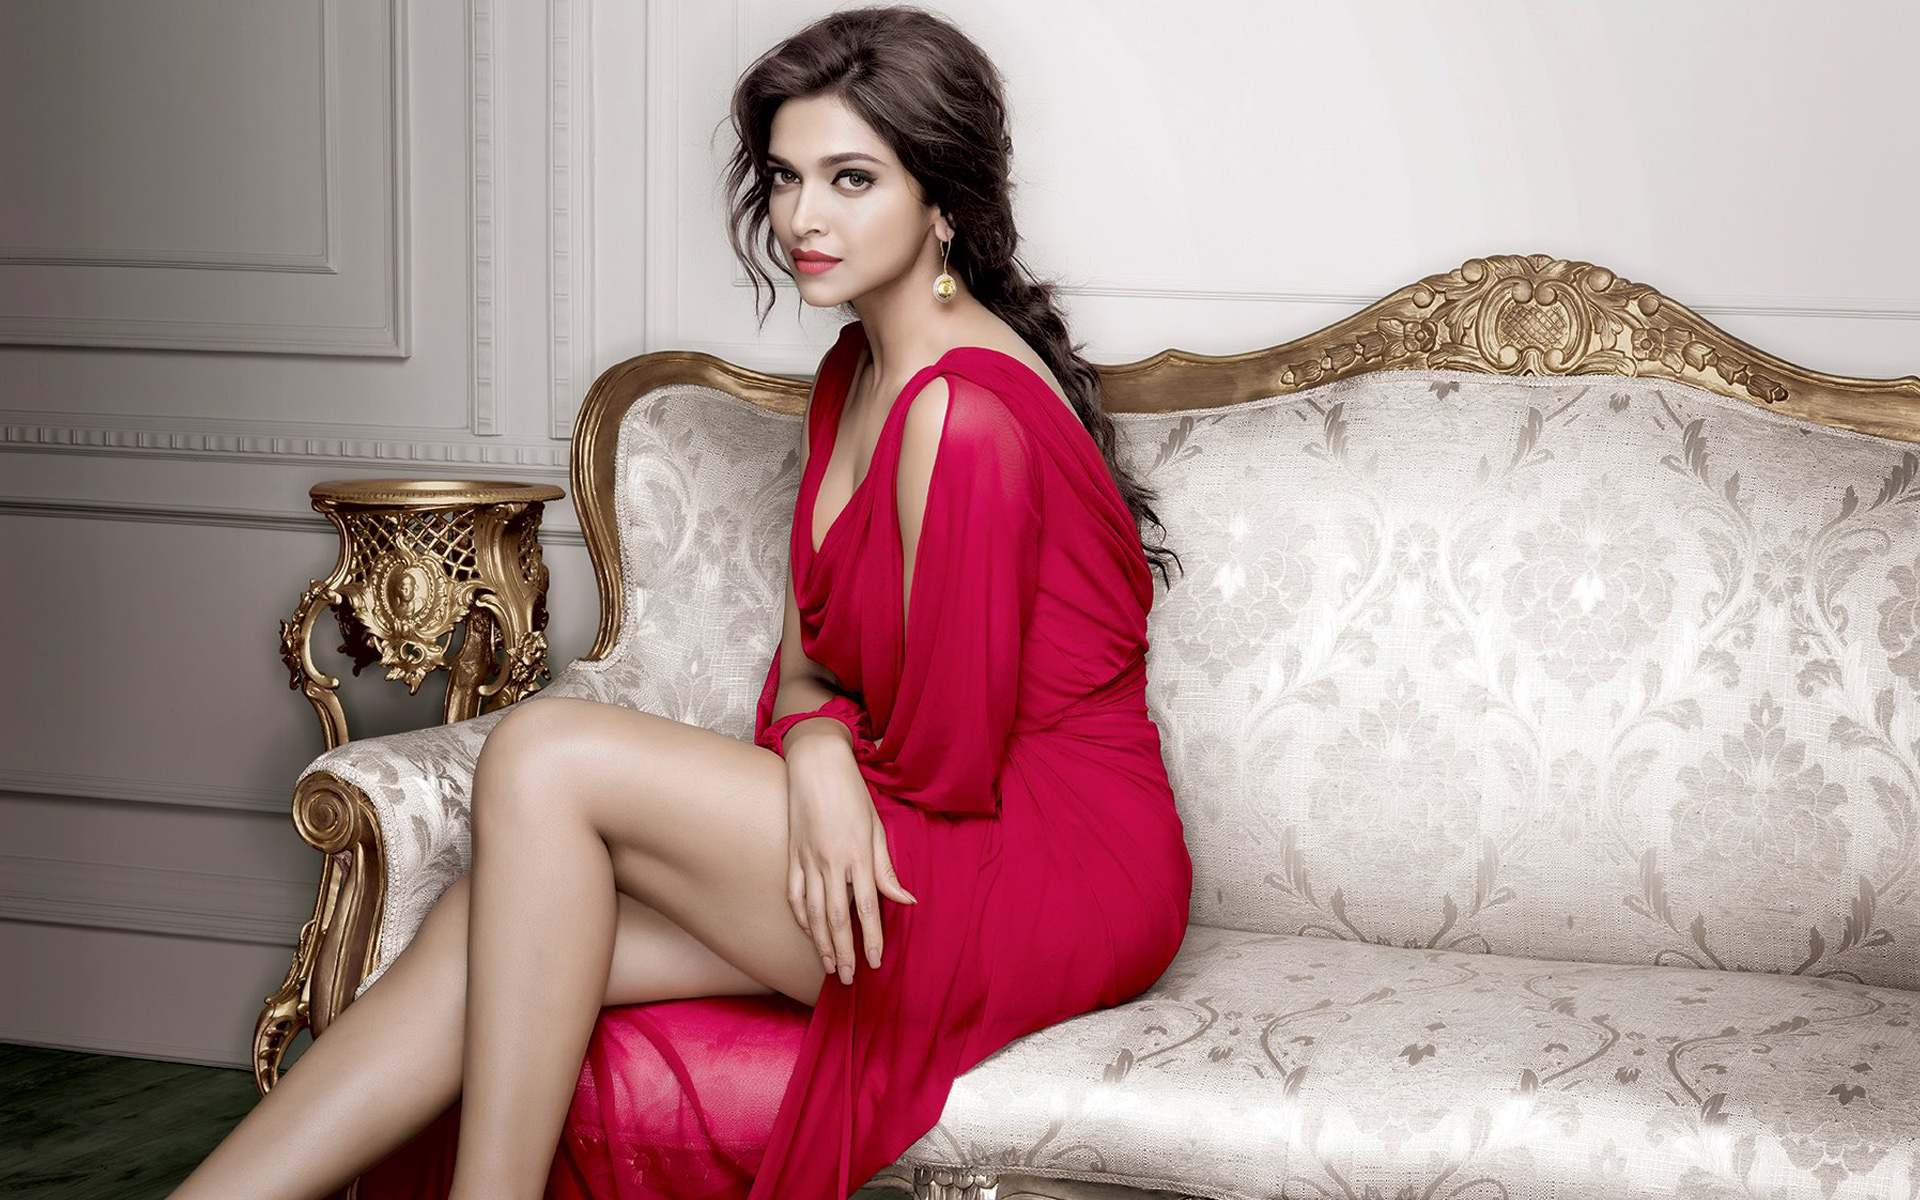 Deepika Padukone Queen Of Expressions Hd Wallpapers All Hd Wallpapers